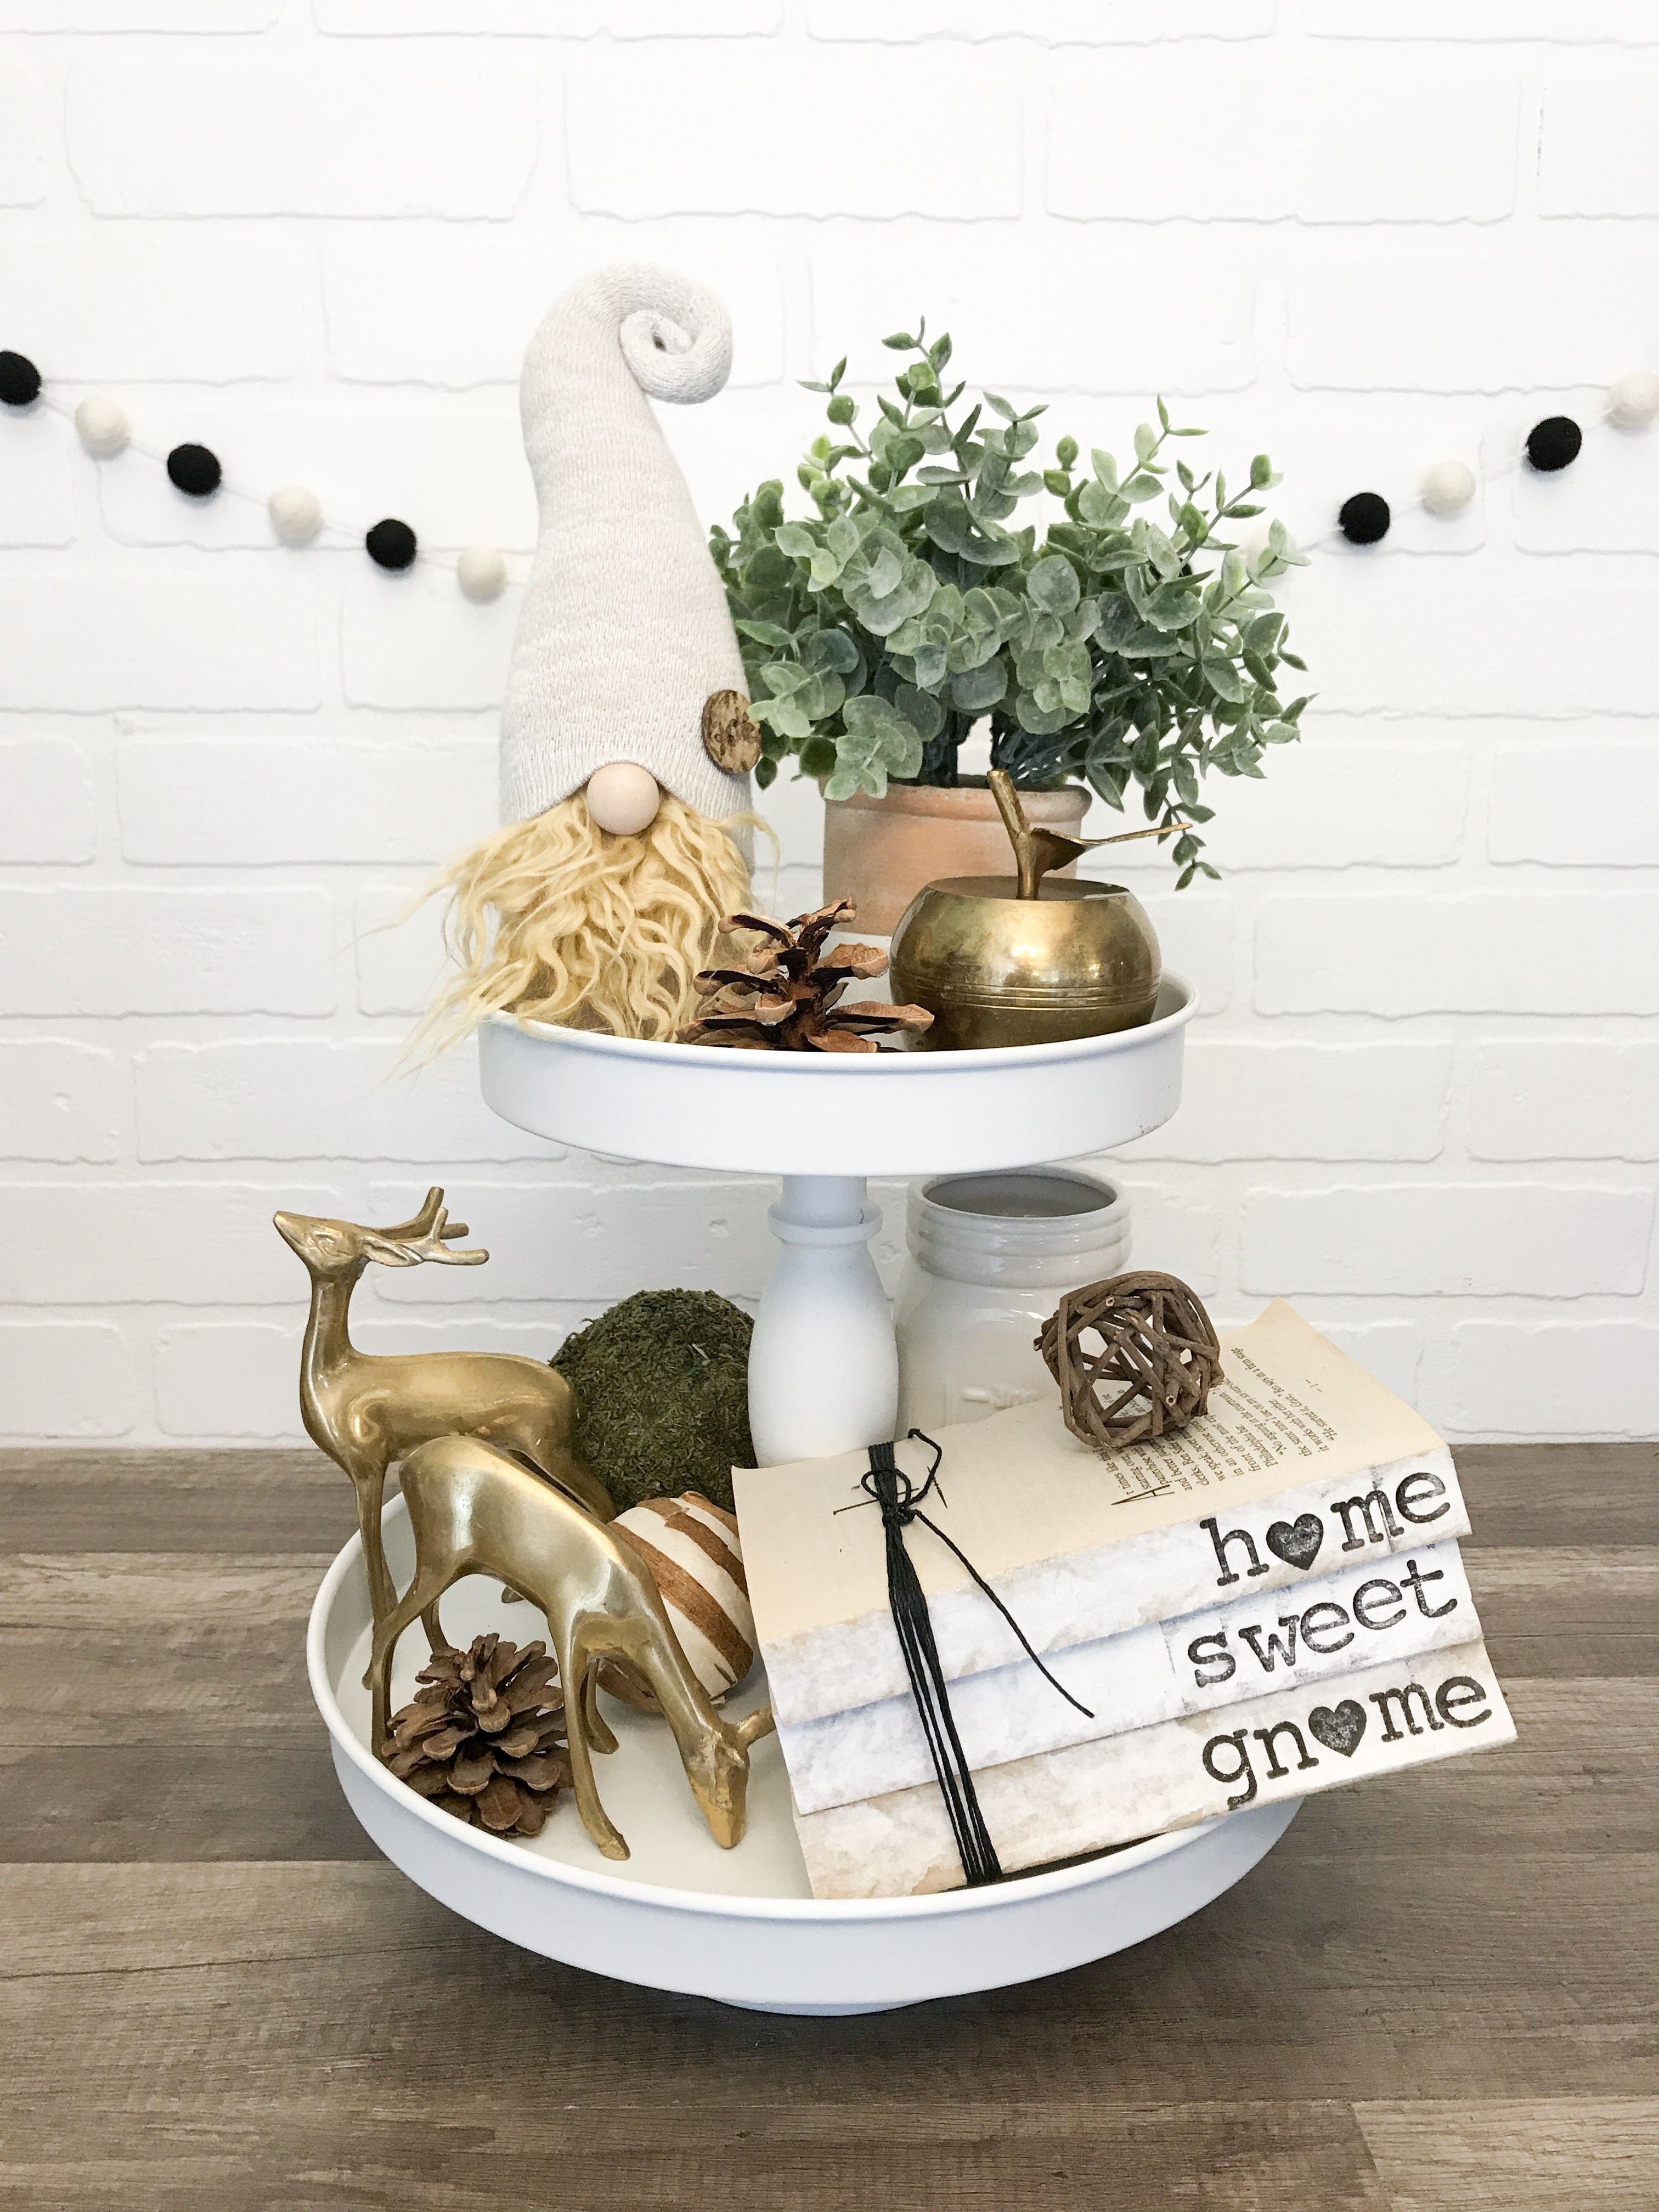 Fall tiered tray decorating.  Tiered tray gnome.  Fall gnome.  Brass decor.  Fall farmhouse tiered tray. #tieredtraydecor Fall tiered tray decorating.  Tiered tray gnome.  Fall gnome.  Brass decor.  Fall farmhouse tiered tray. #tieredtraydecor Fall tiered tray decorating.  Tiered tray gnome.  Fall gnome.  Brass decor.  Fall farmhouse tiered tray. #tieredtraydecor Fall tiered tray decorating.  Tiered tray gnome.  Fall gnome.  Brass decor.  Fall farmhouse tiered tray. #tieredtraydecor